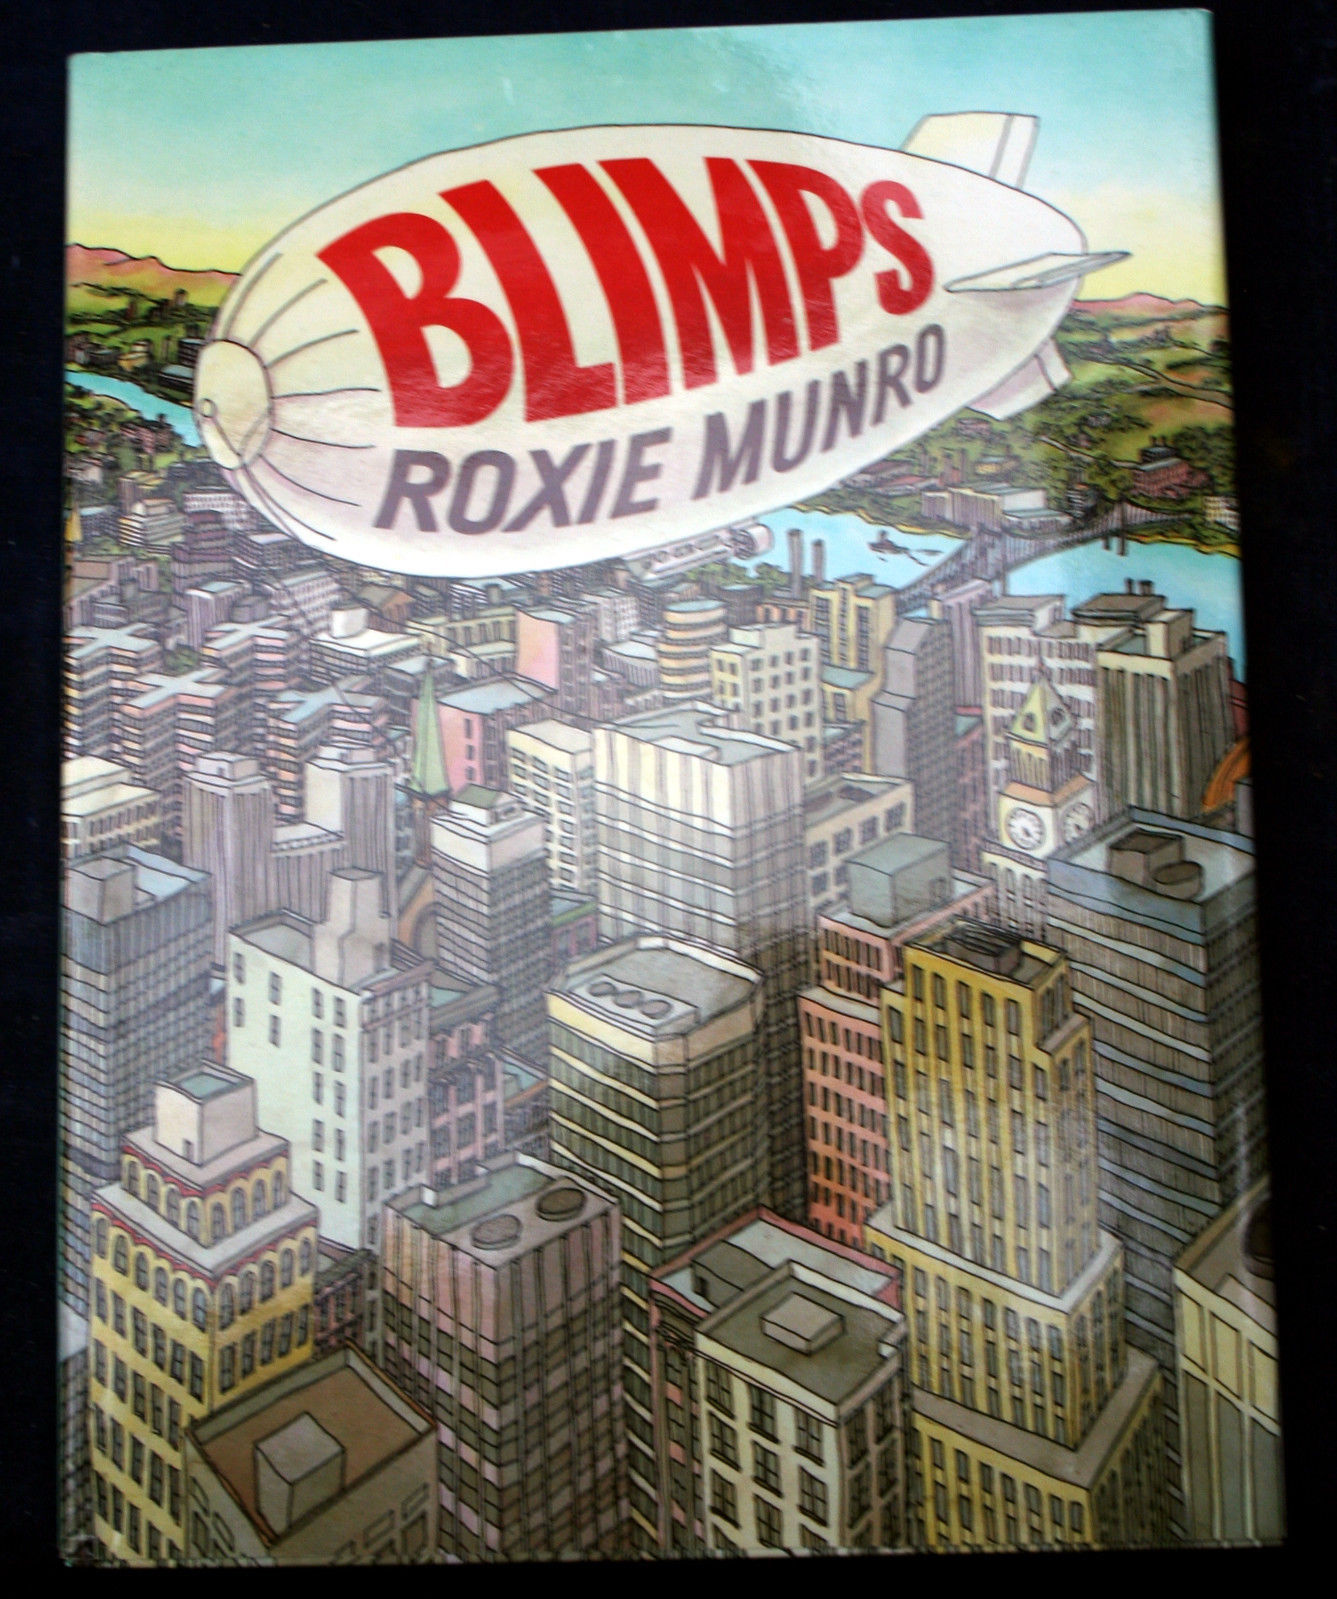 Primary image for BLIMPS Roxie Munro HCDJFP zeppelin dirigible HCDJ FEFP kids story book balloons